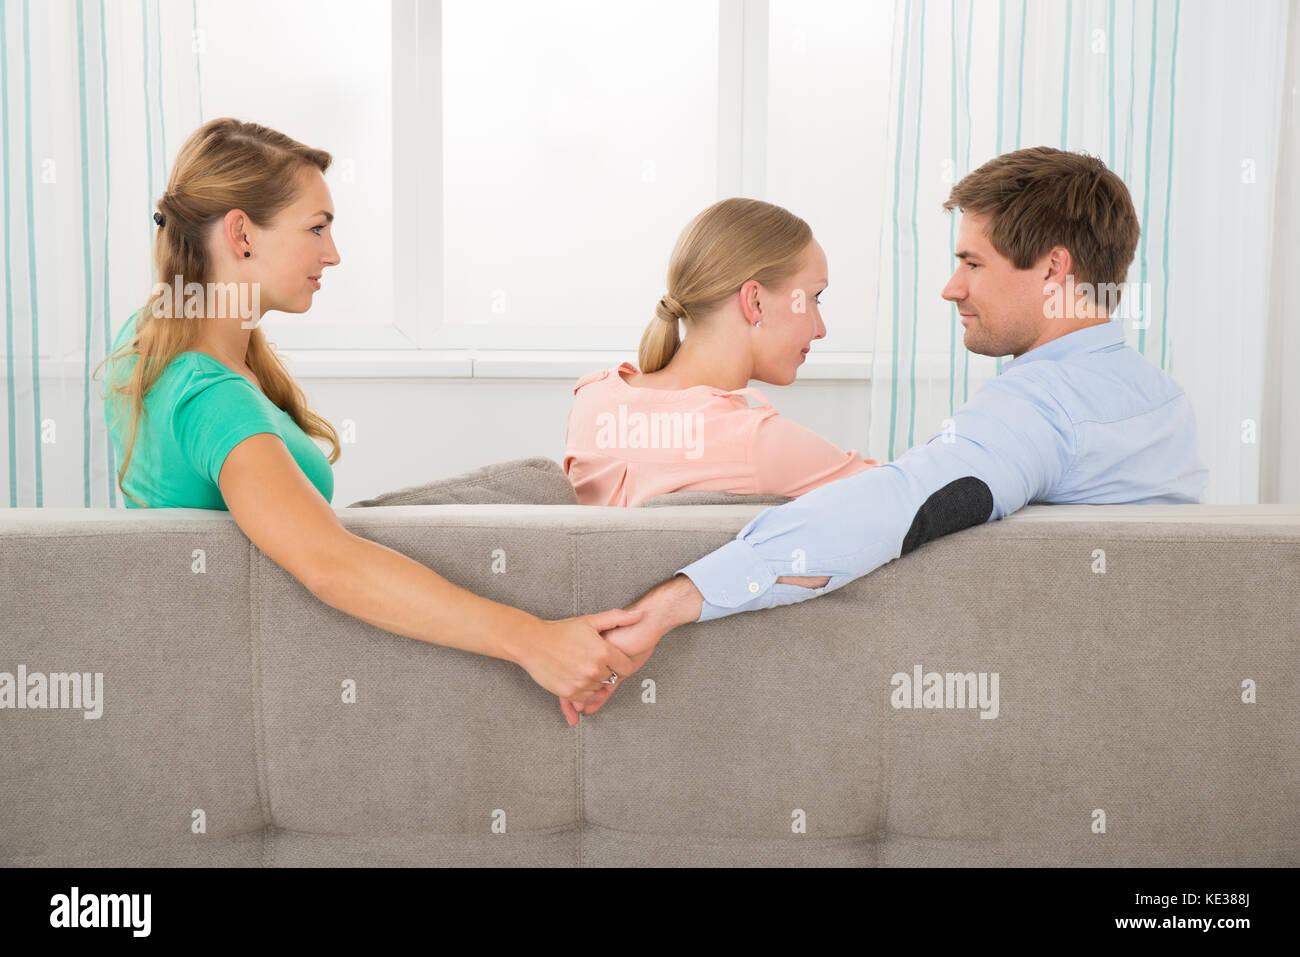 Love triangle. Young Man Sitting On Sofa Holding Hands Of His Female Friend While Looking At Girlfriend - Stock Image